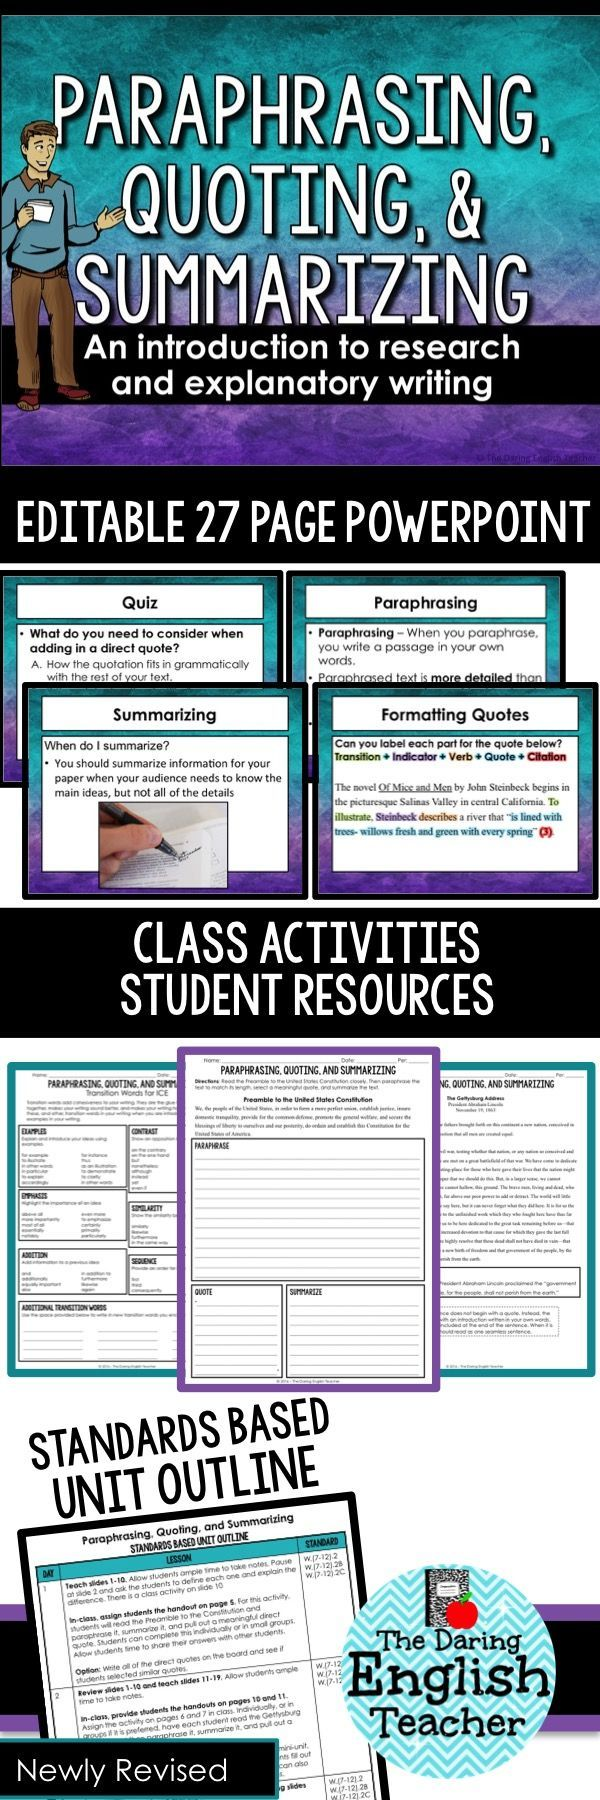 17 best images about a secondary student teacher treasury on paraphrasing quoting and summarizing teaching aisteaching essaymaddie